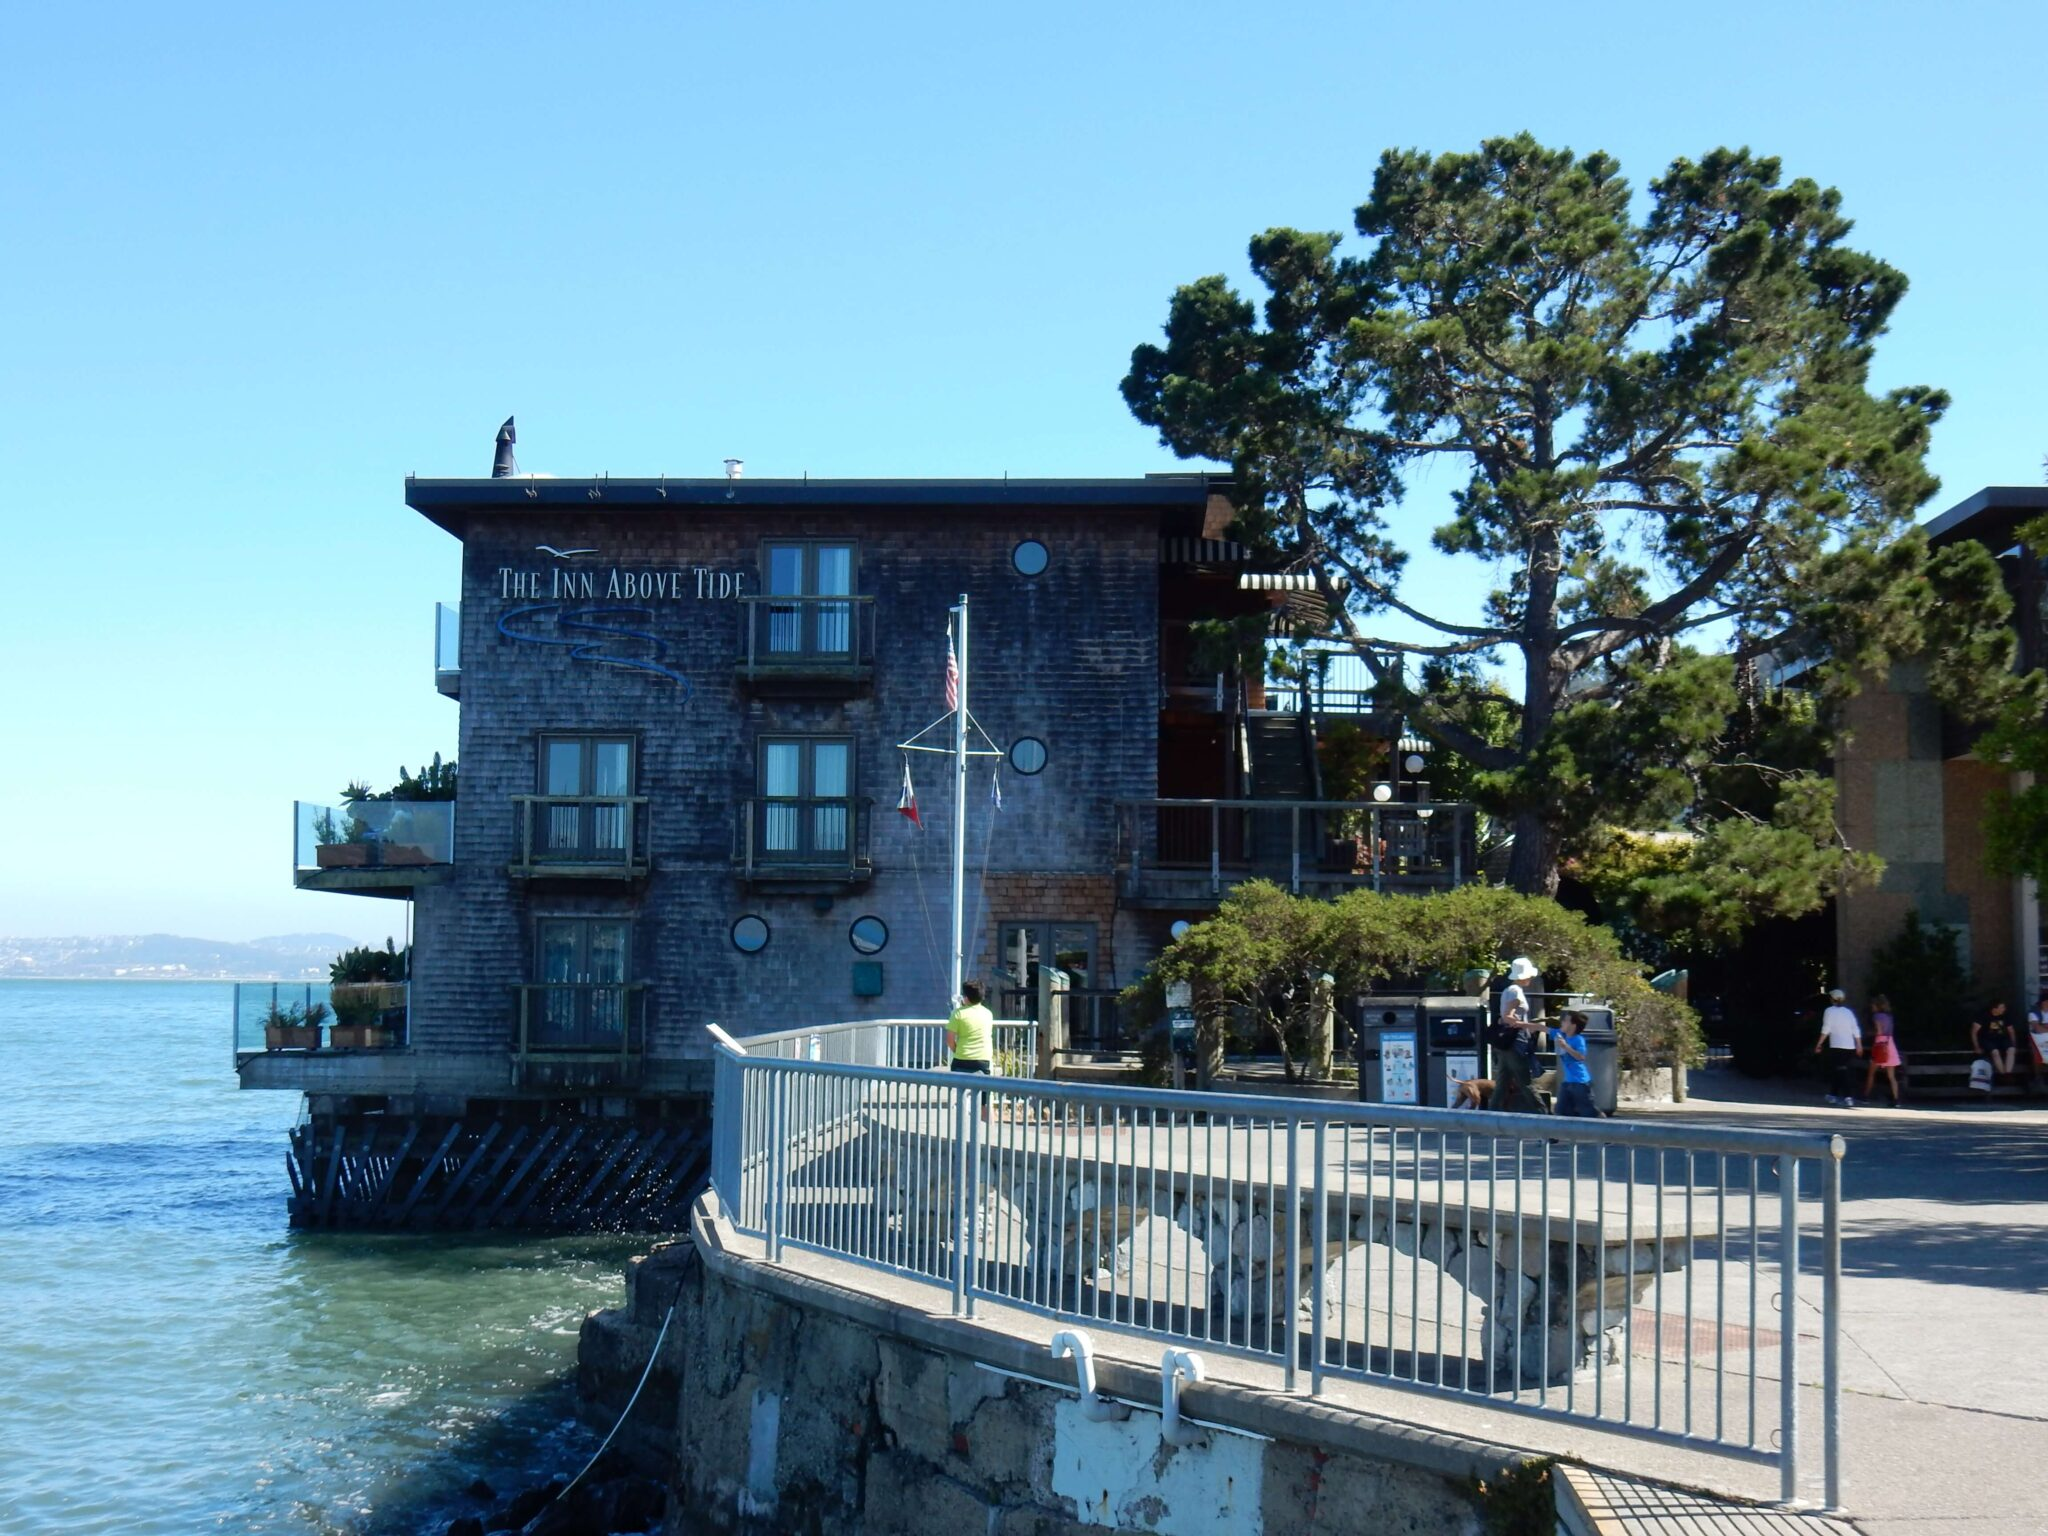 The Inn Above the Tide, Sausalito